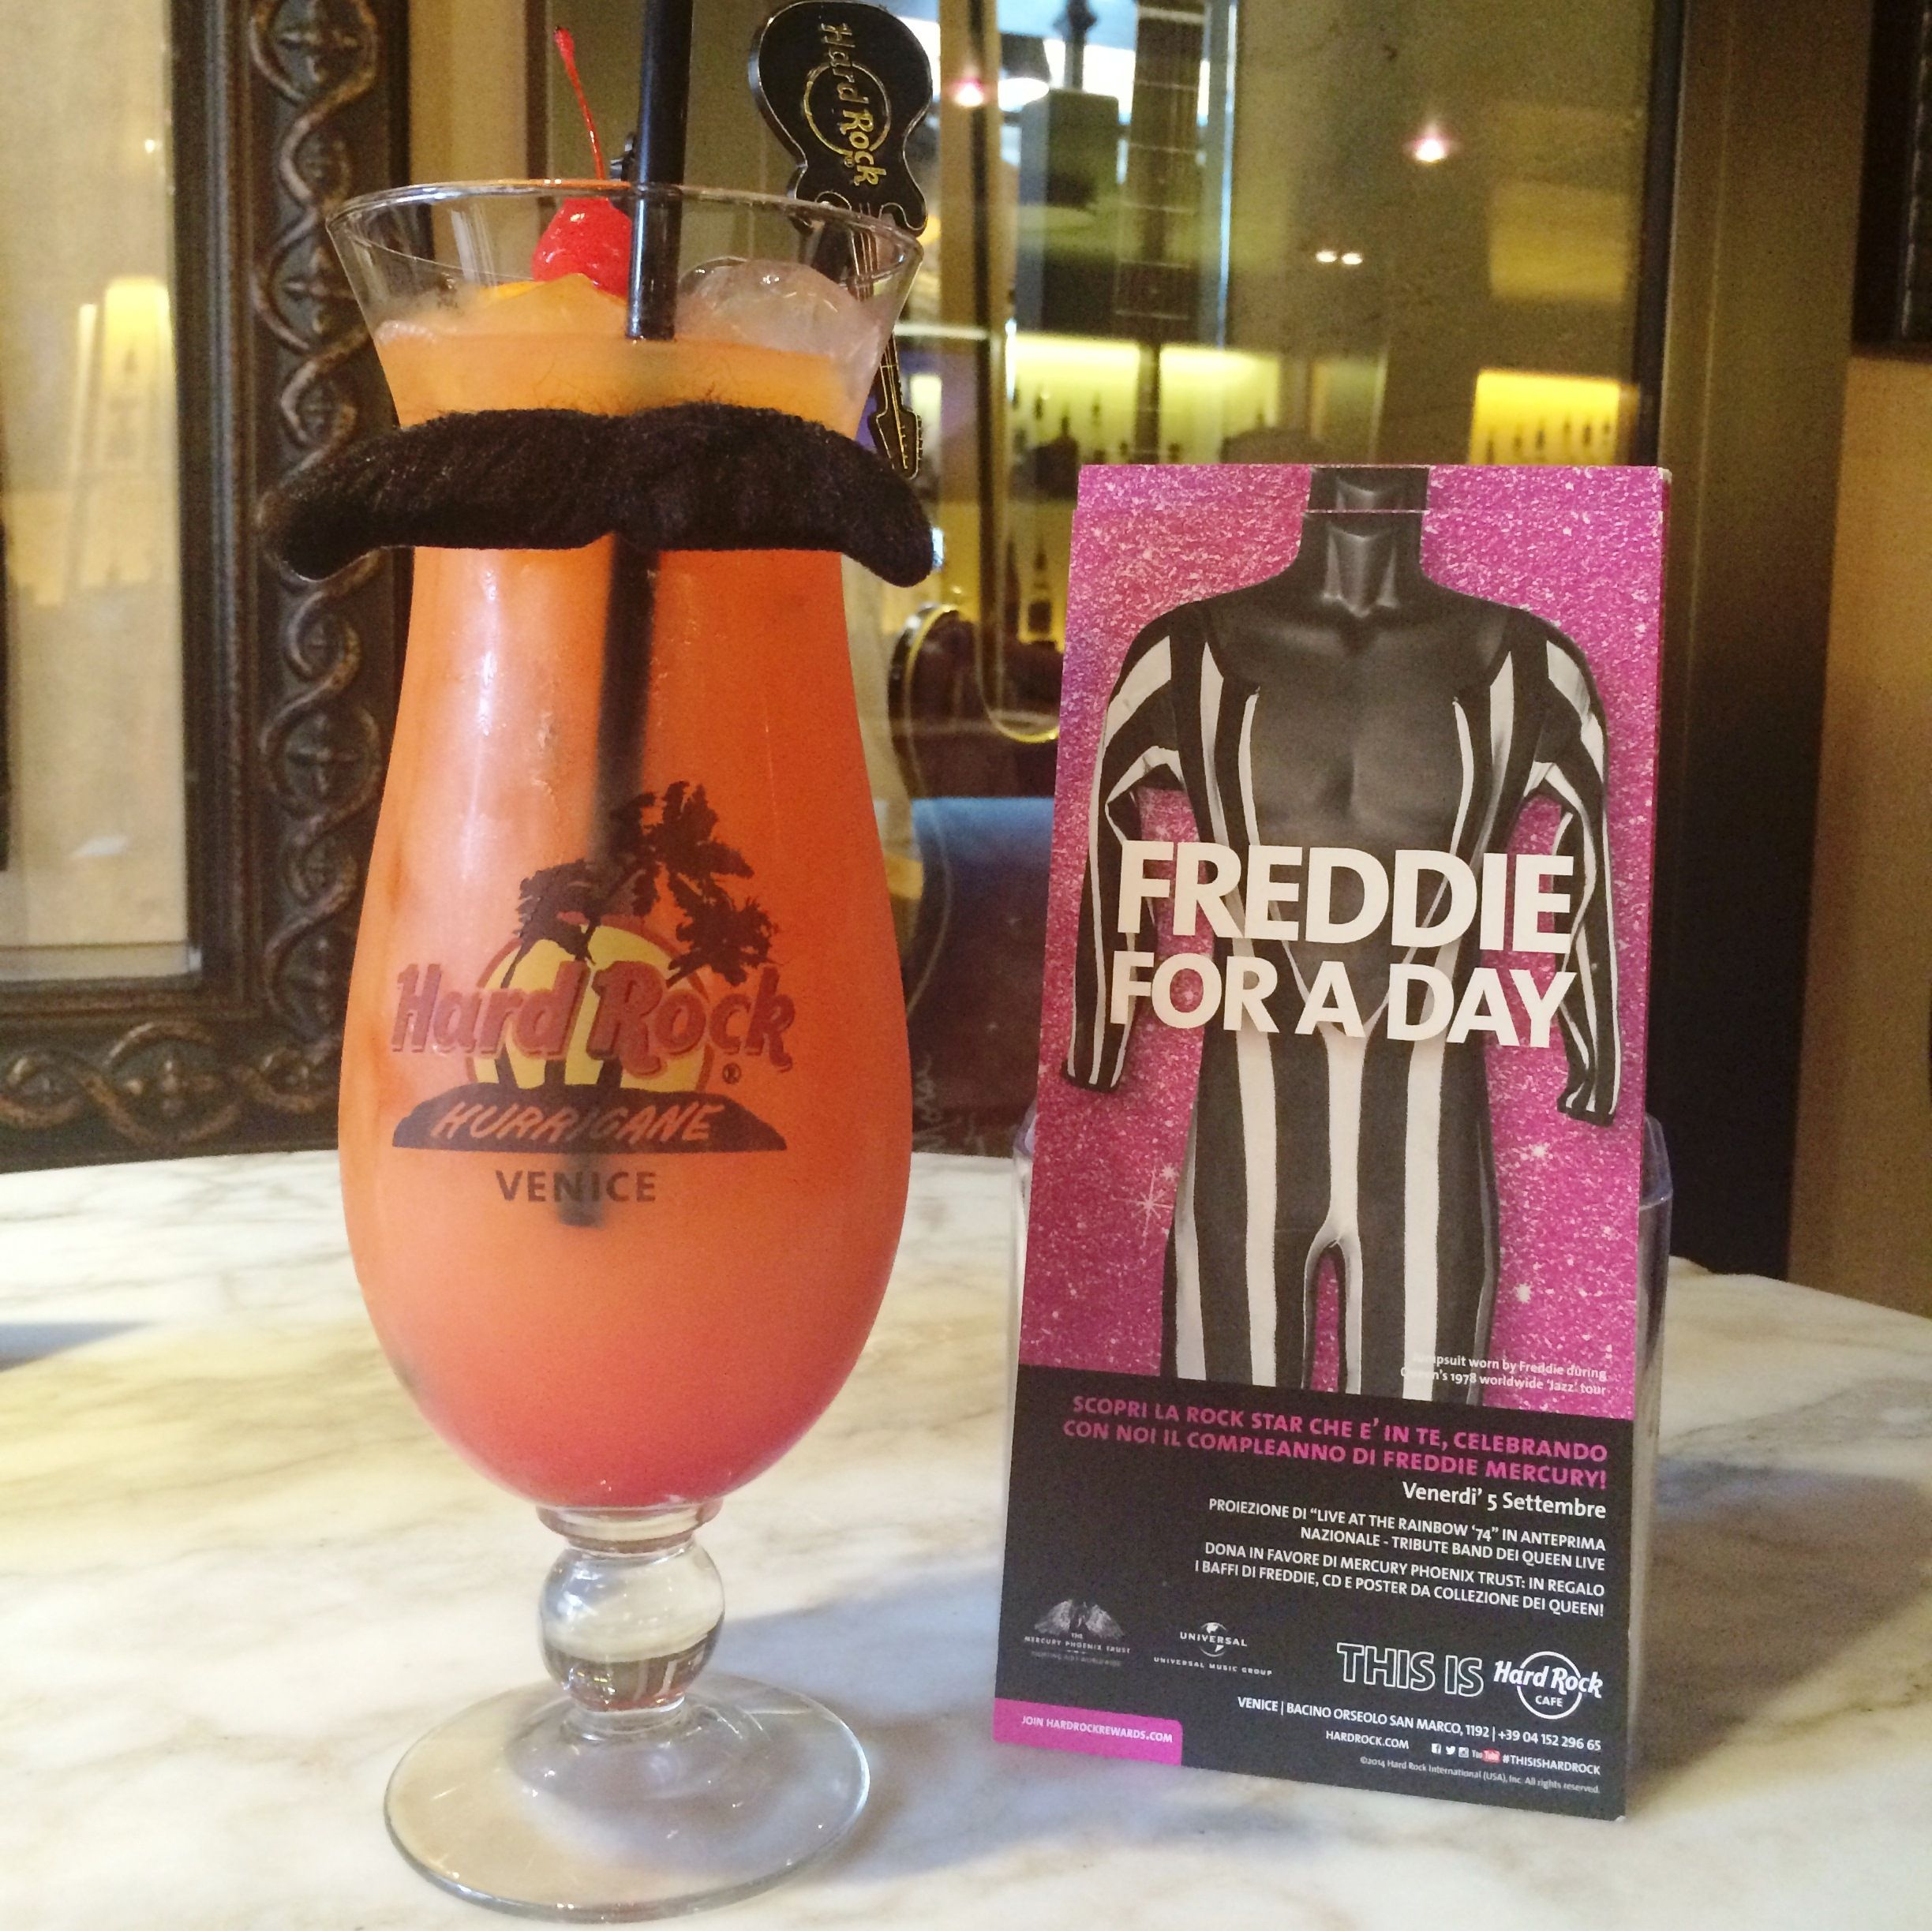 Pin On Freddie For A Day Hard Rock Cafe Venice